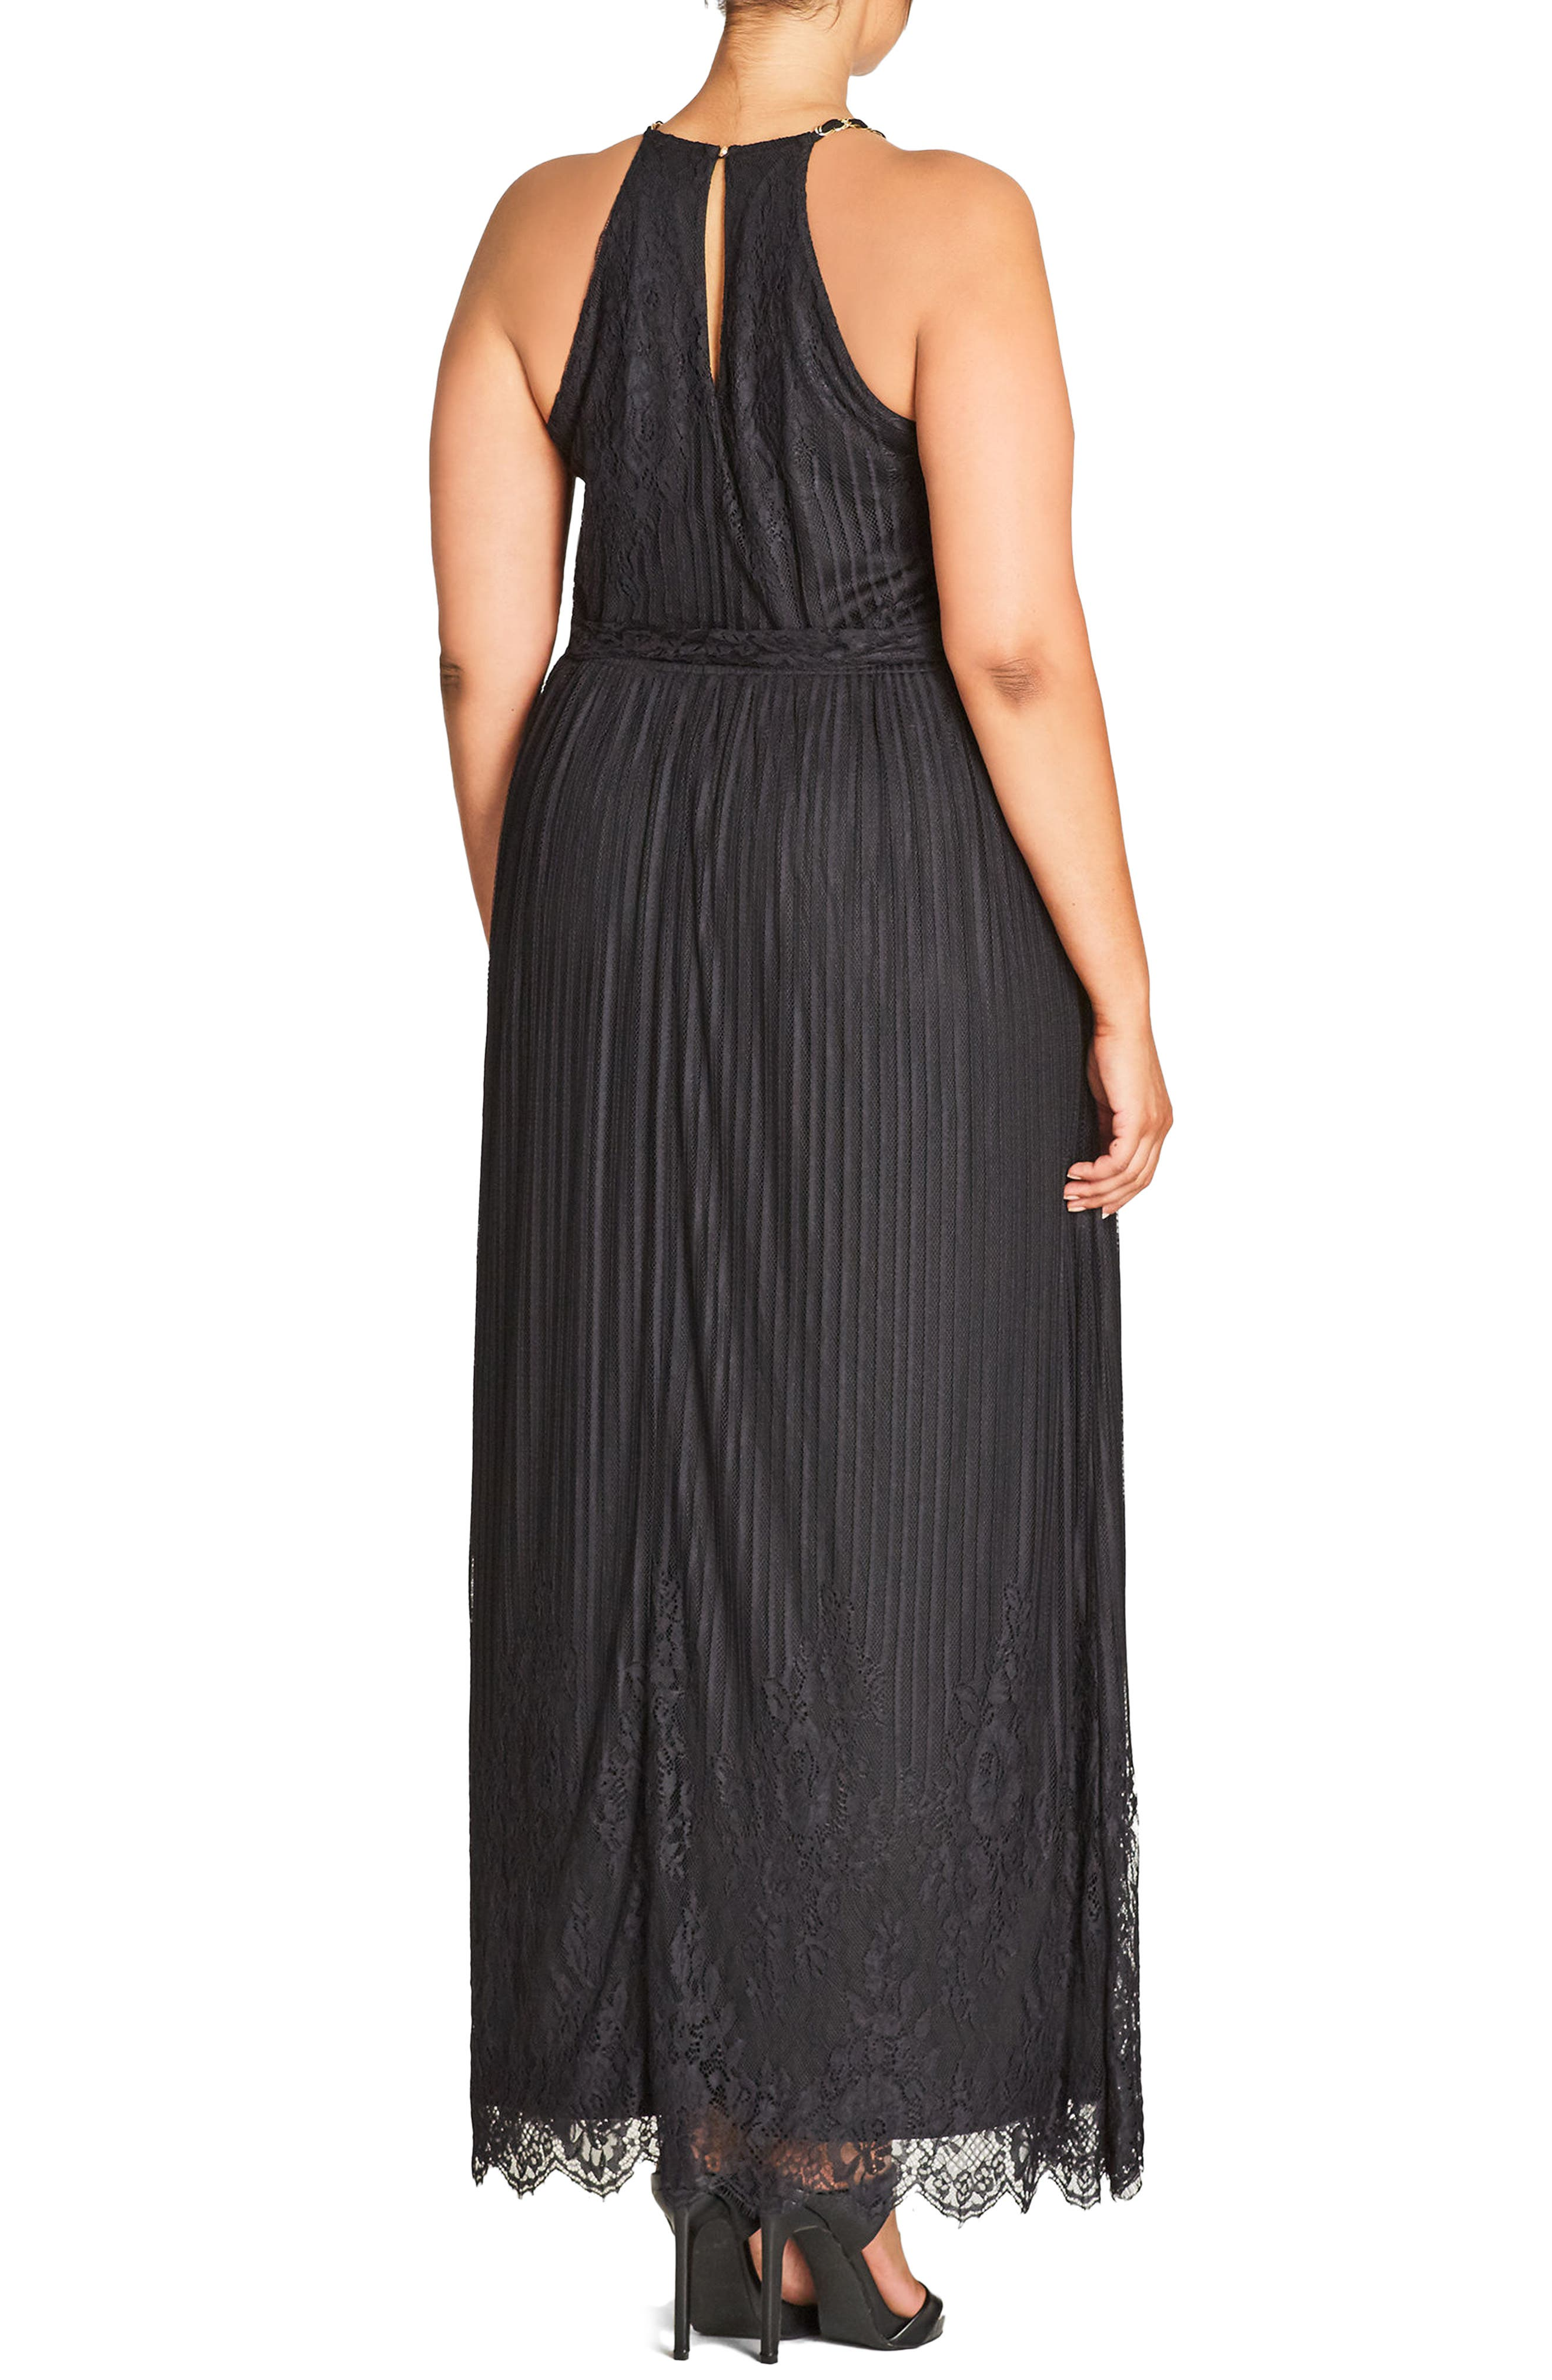 Studio 54 Stripe Lace Maxi Dress,                             Alternate thumbnail 2, color,                             Black